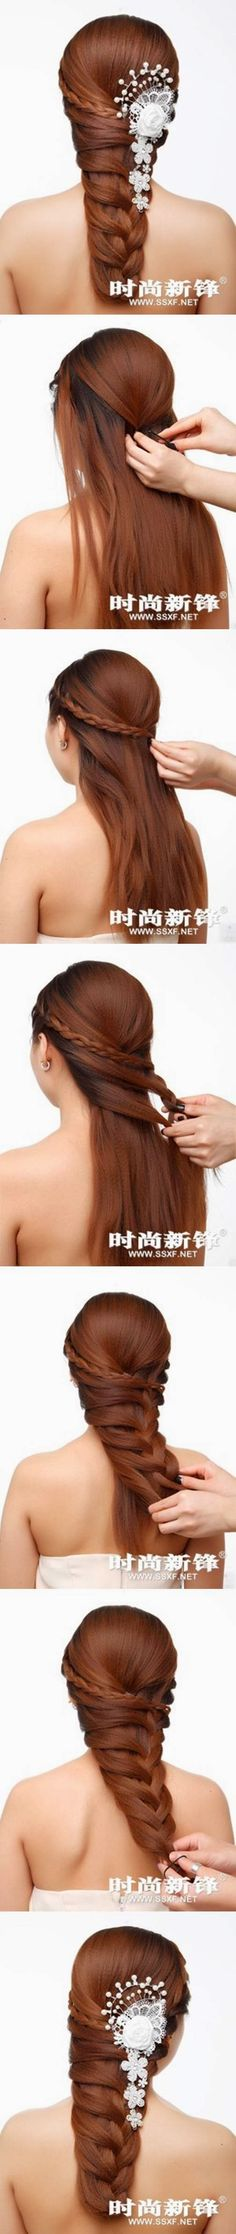 DIY Asymmetrical Braided Hairstyle